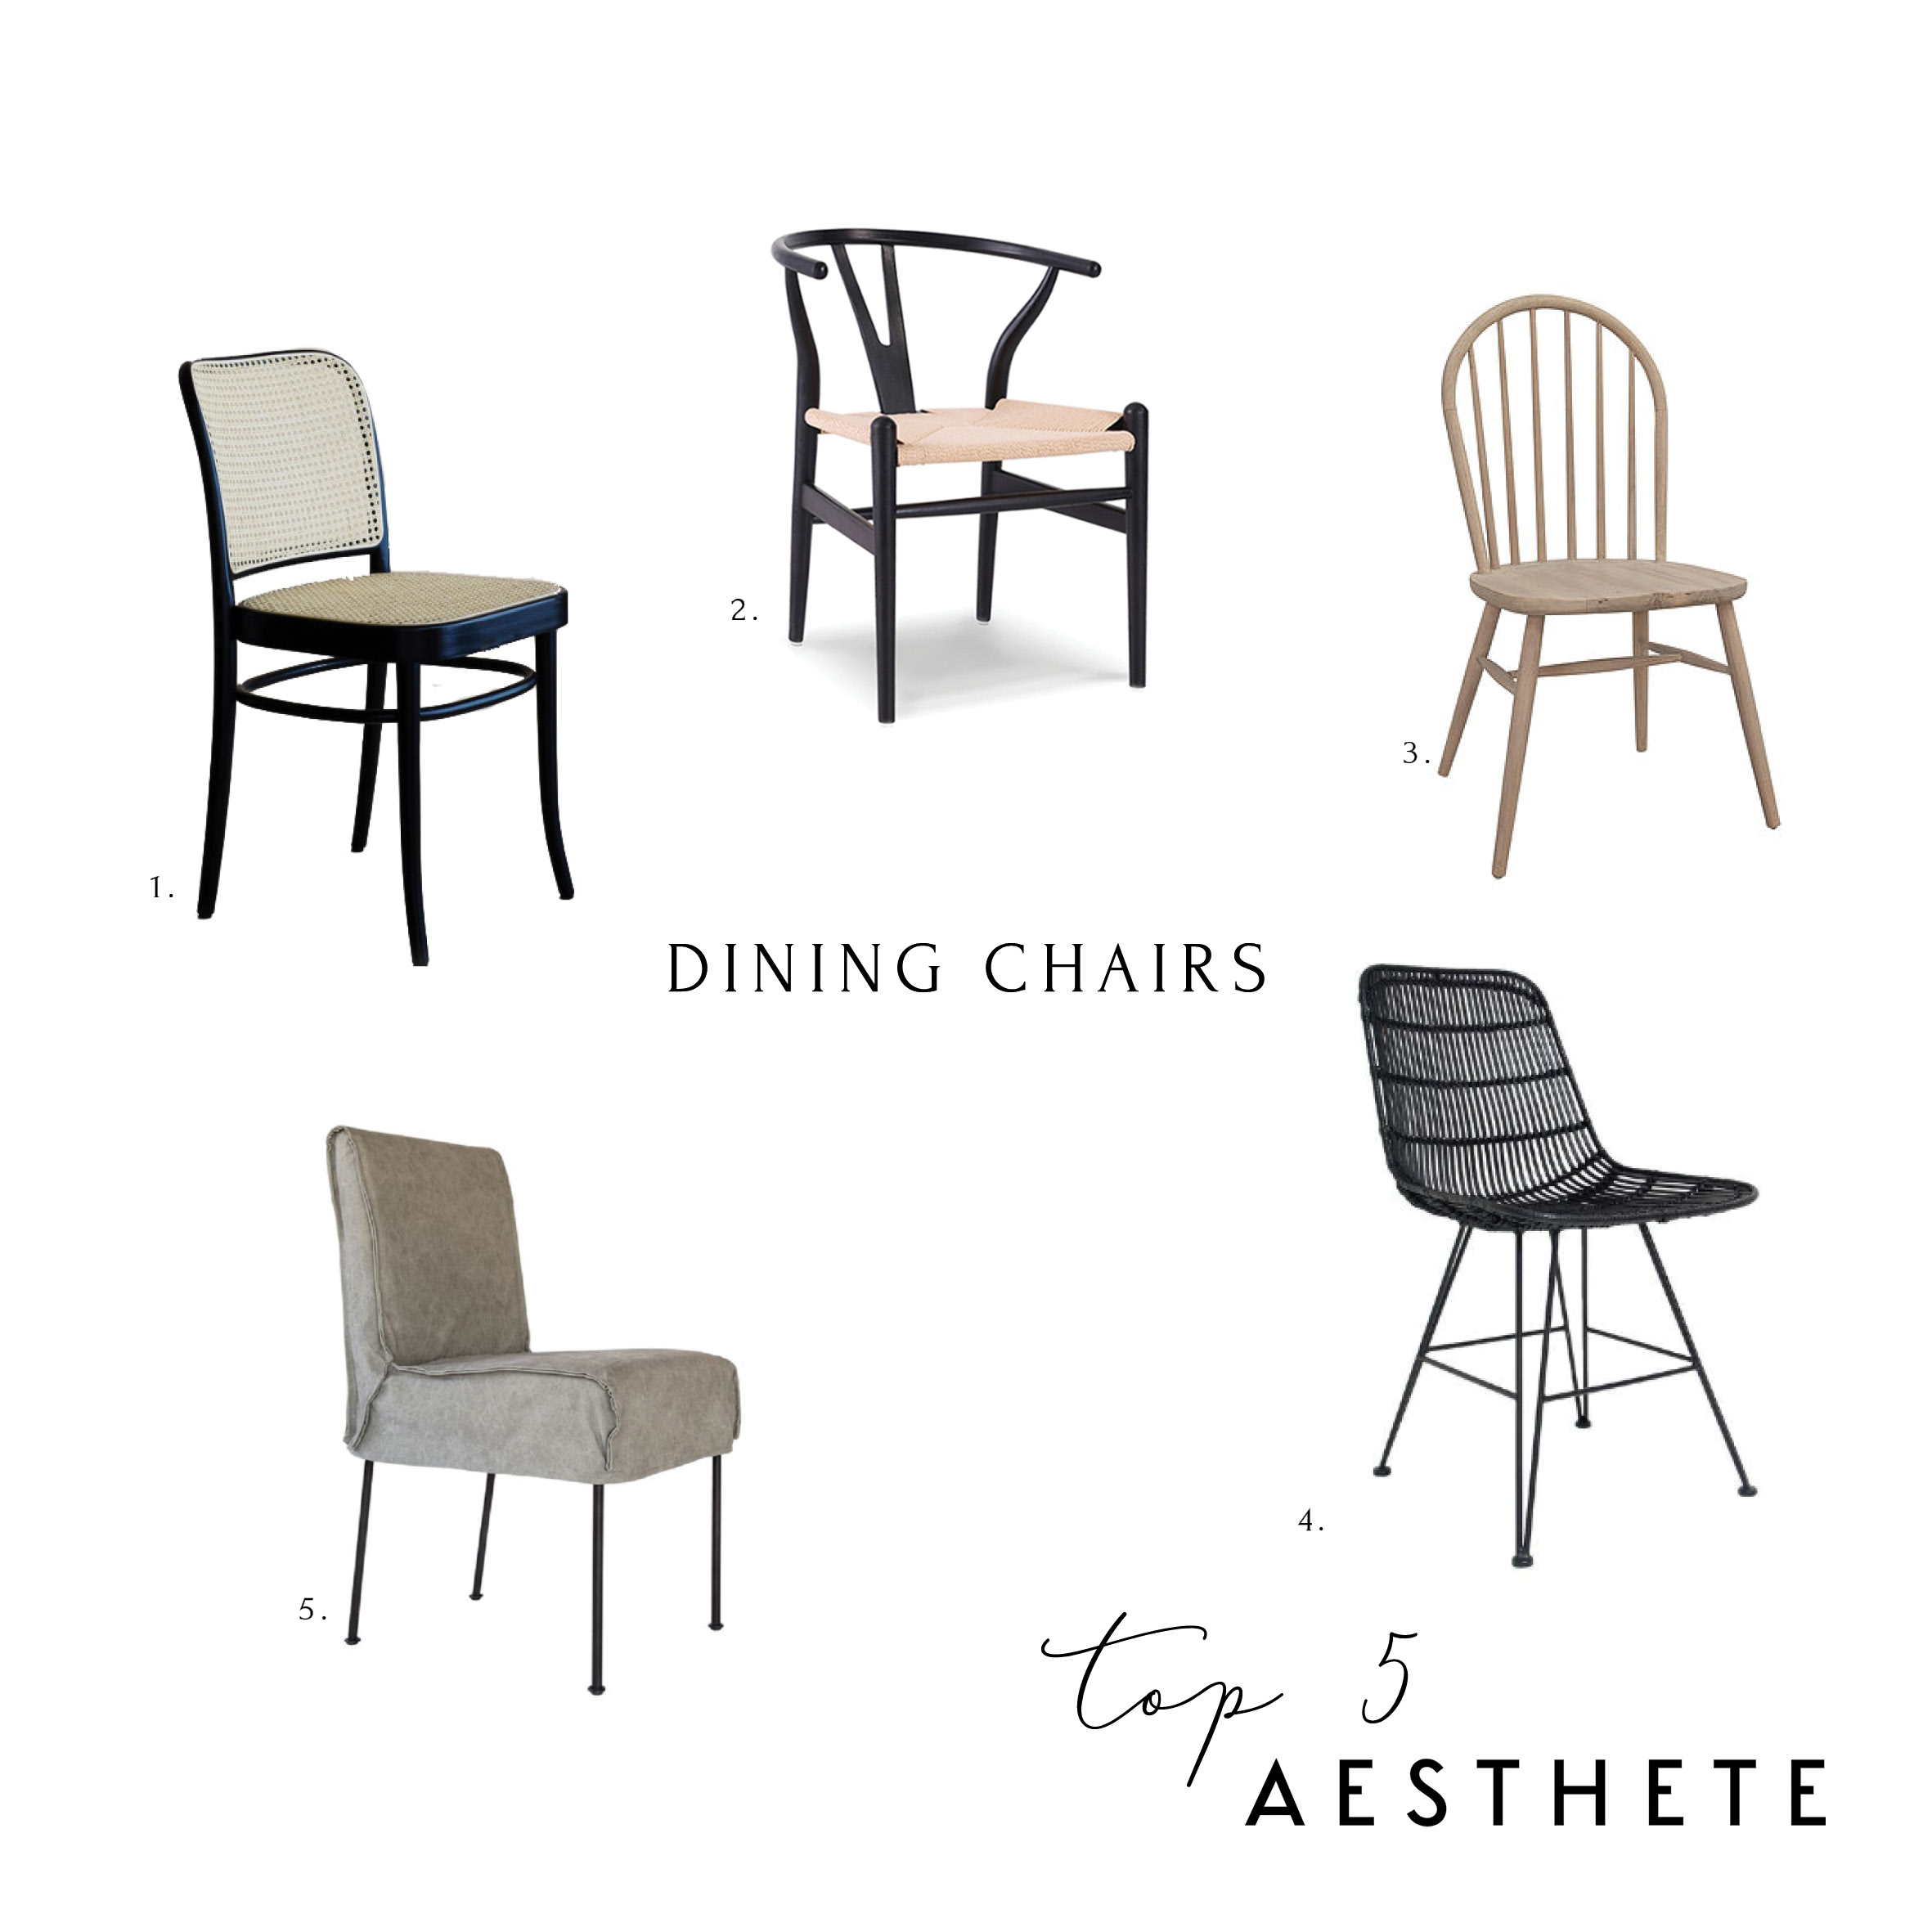 Top 5 Dining Chairs Aesthete